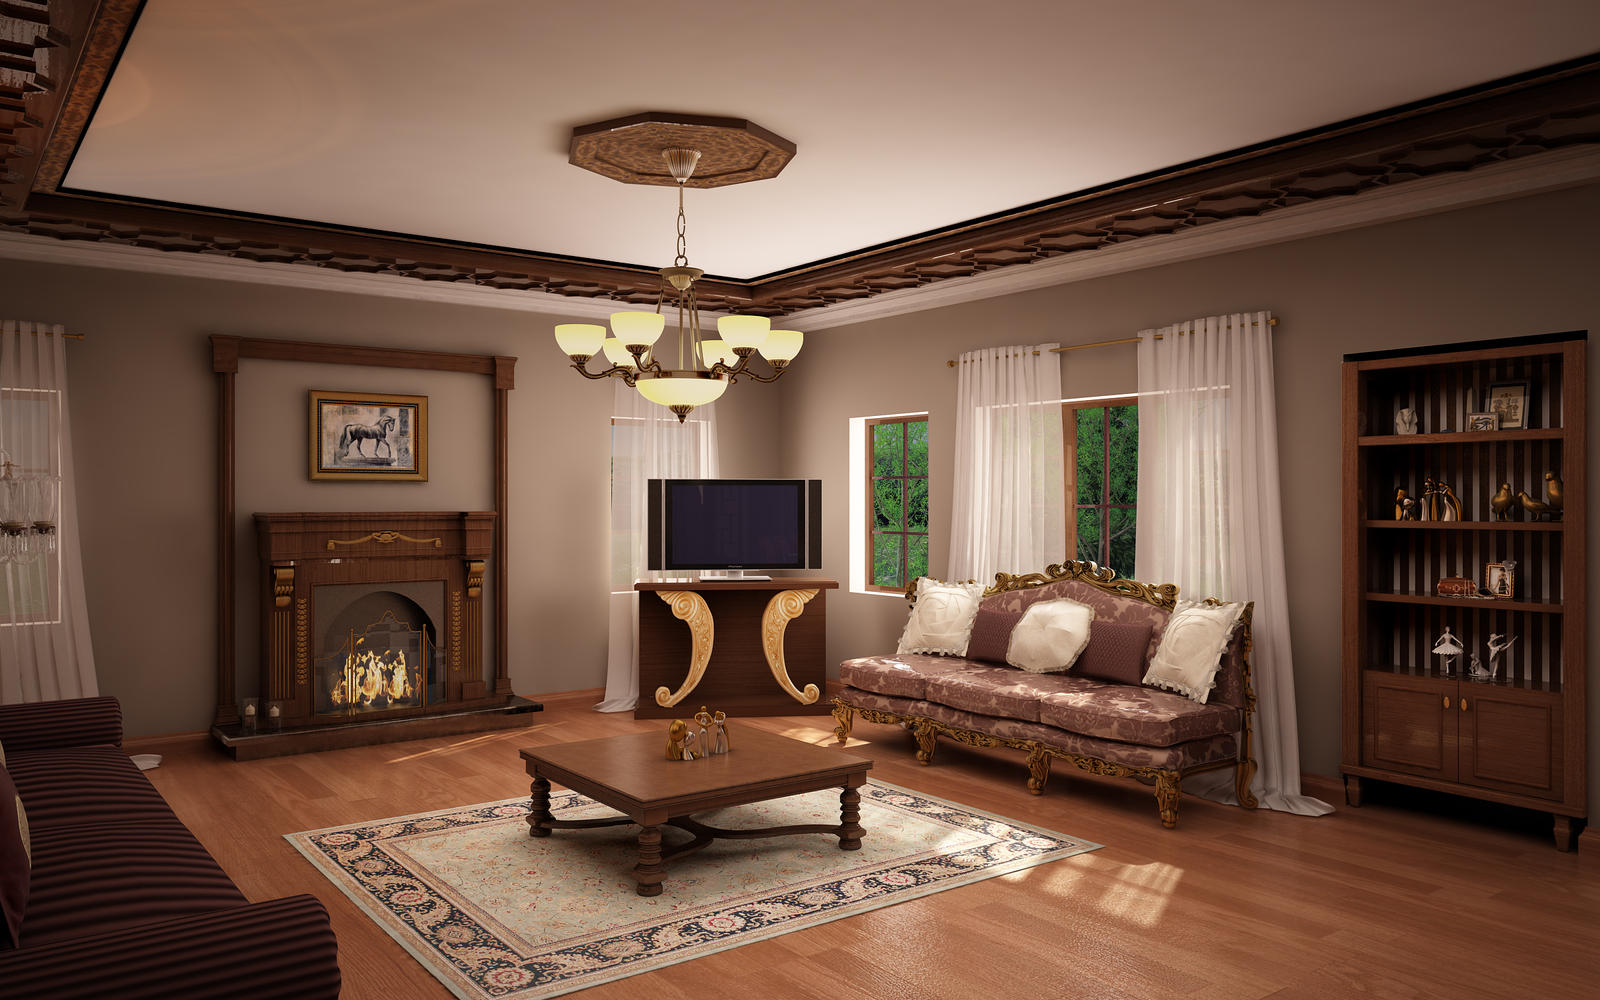 classic living room 02 by murataral on deviantart